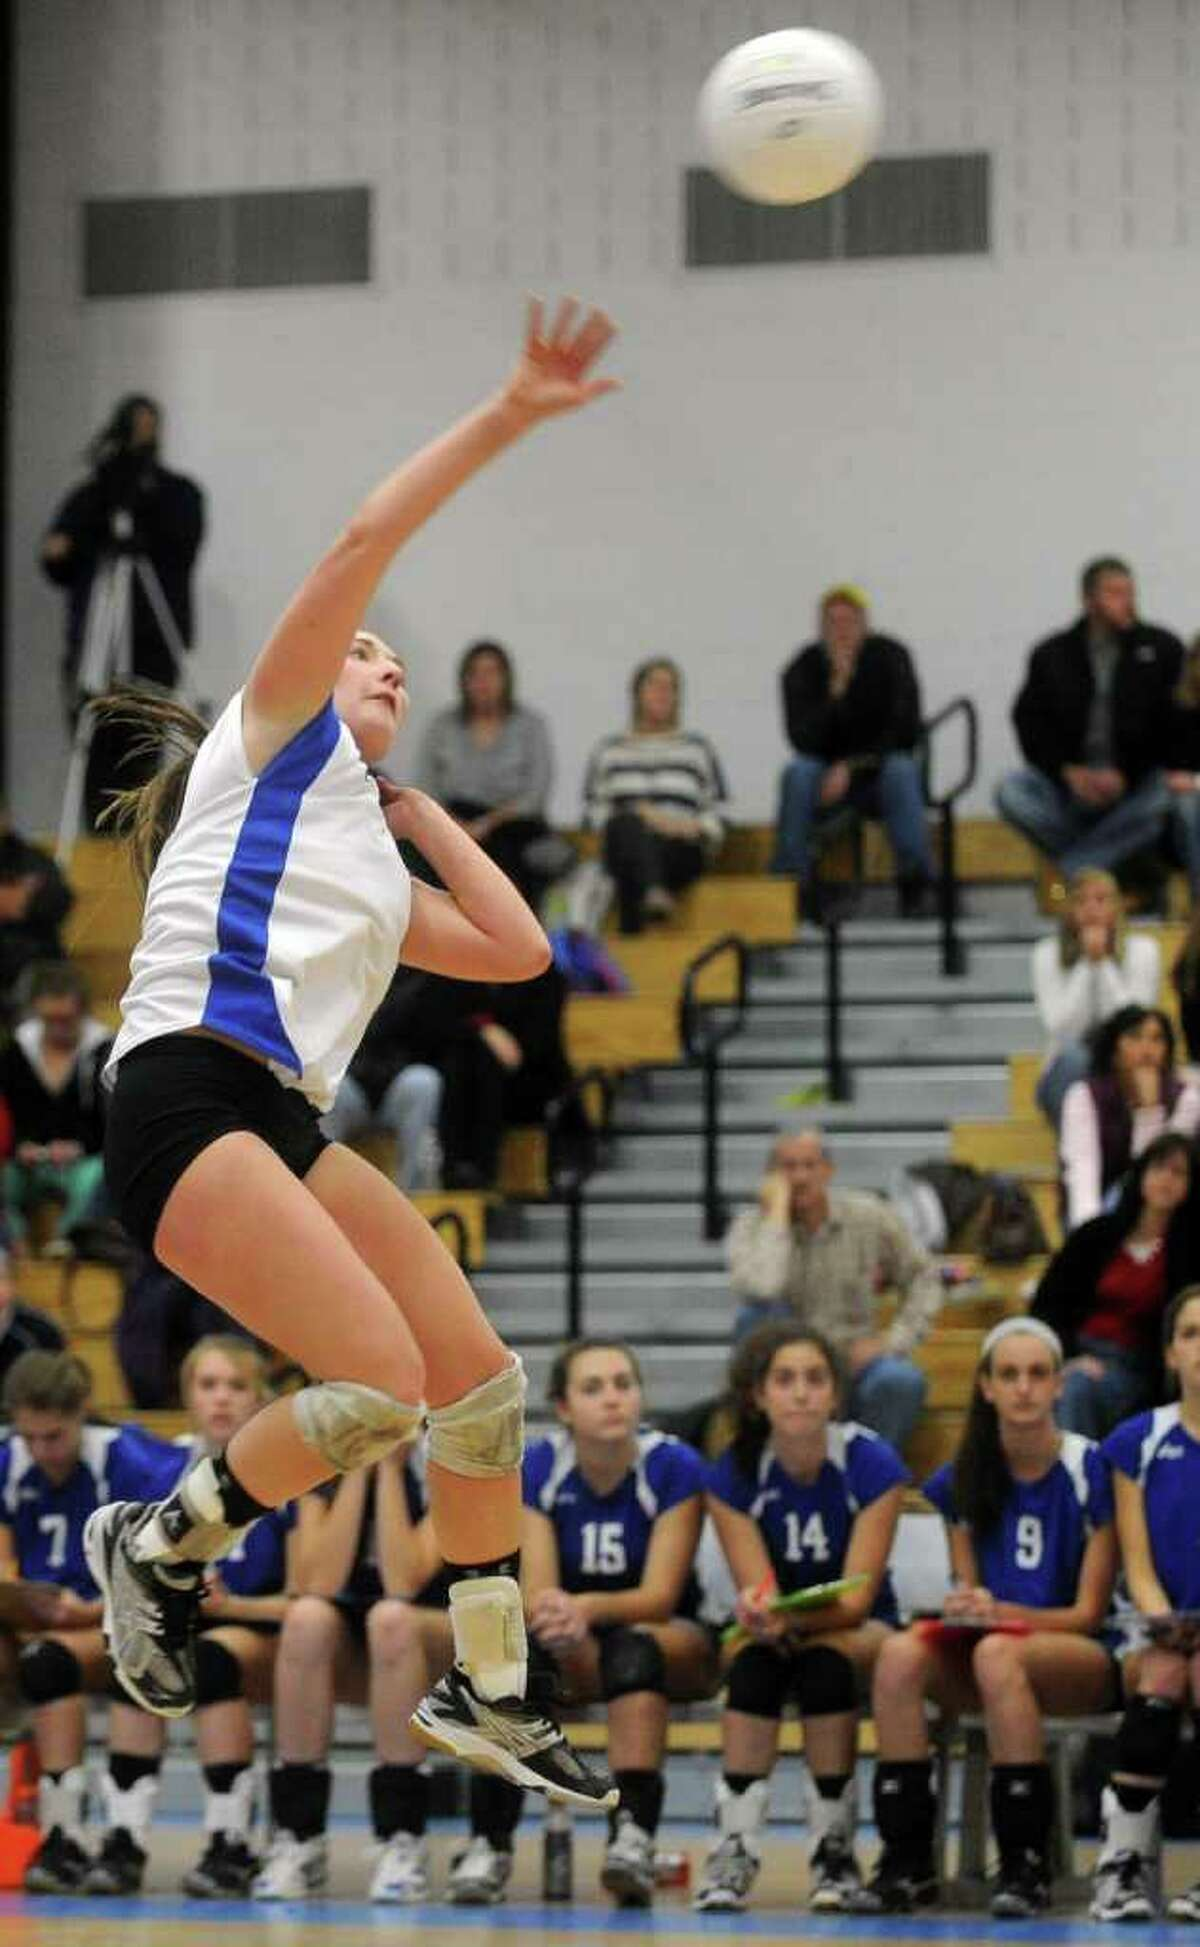 Darien's Bella Carrara spikes the ball during Saturday's Class L Volleyball Championship game against East Lyme at Glastonbury High School on November 20, 2010.